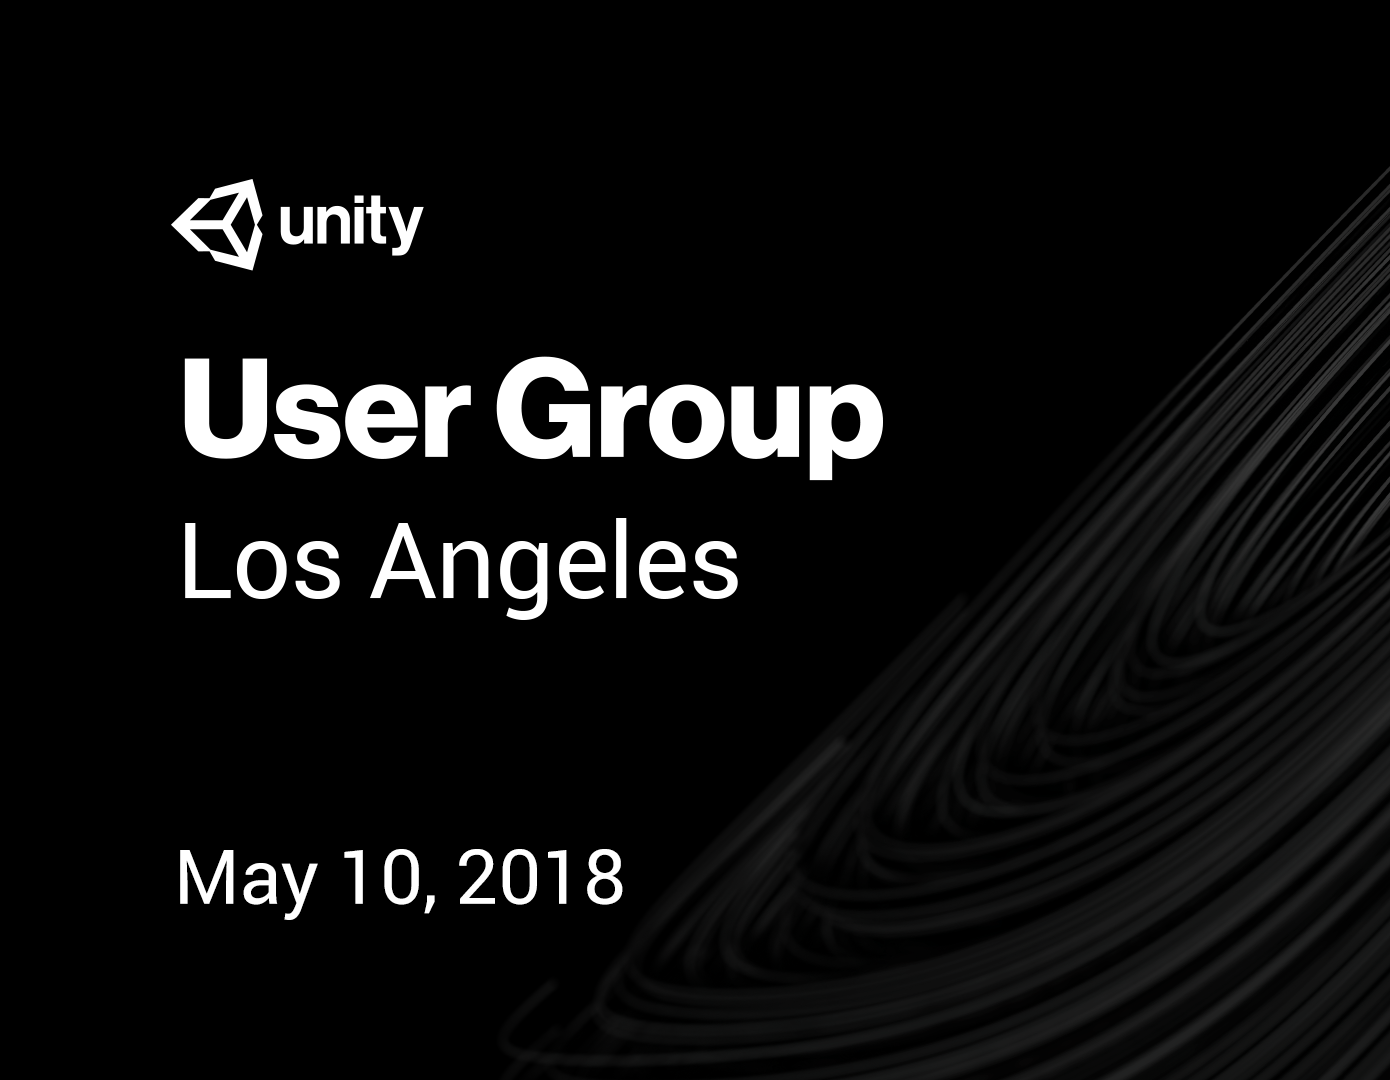 Unity User Group: Los Angeles